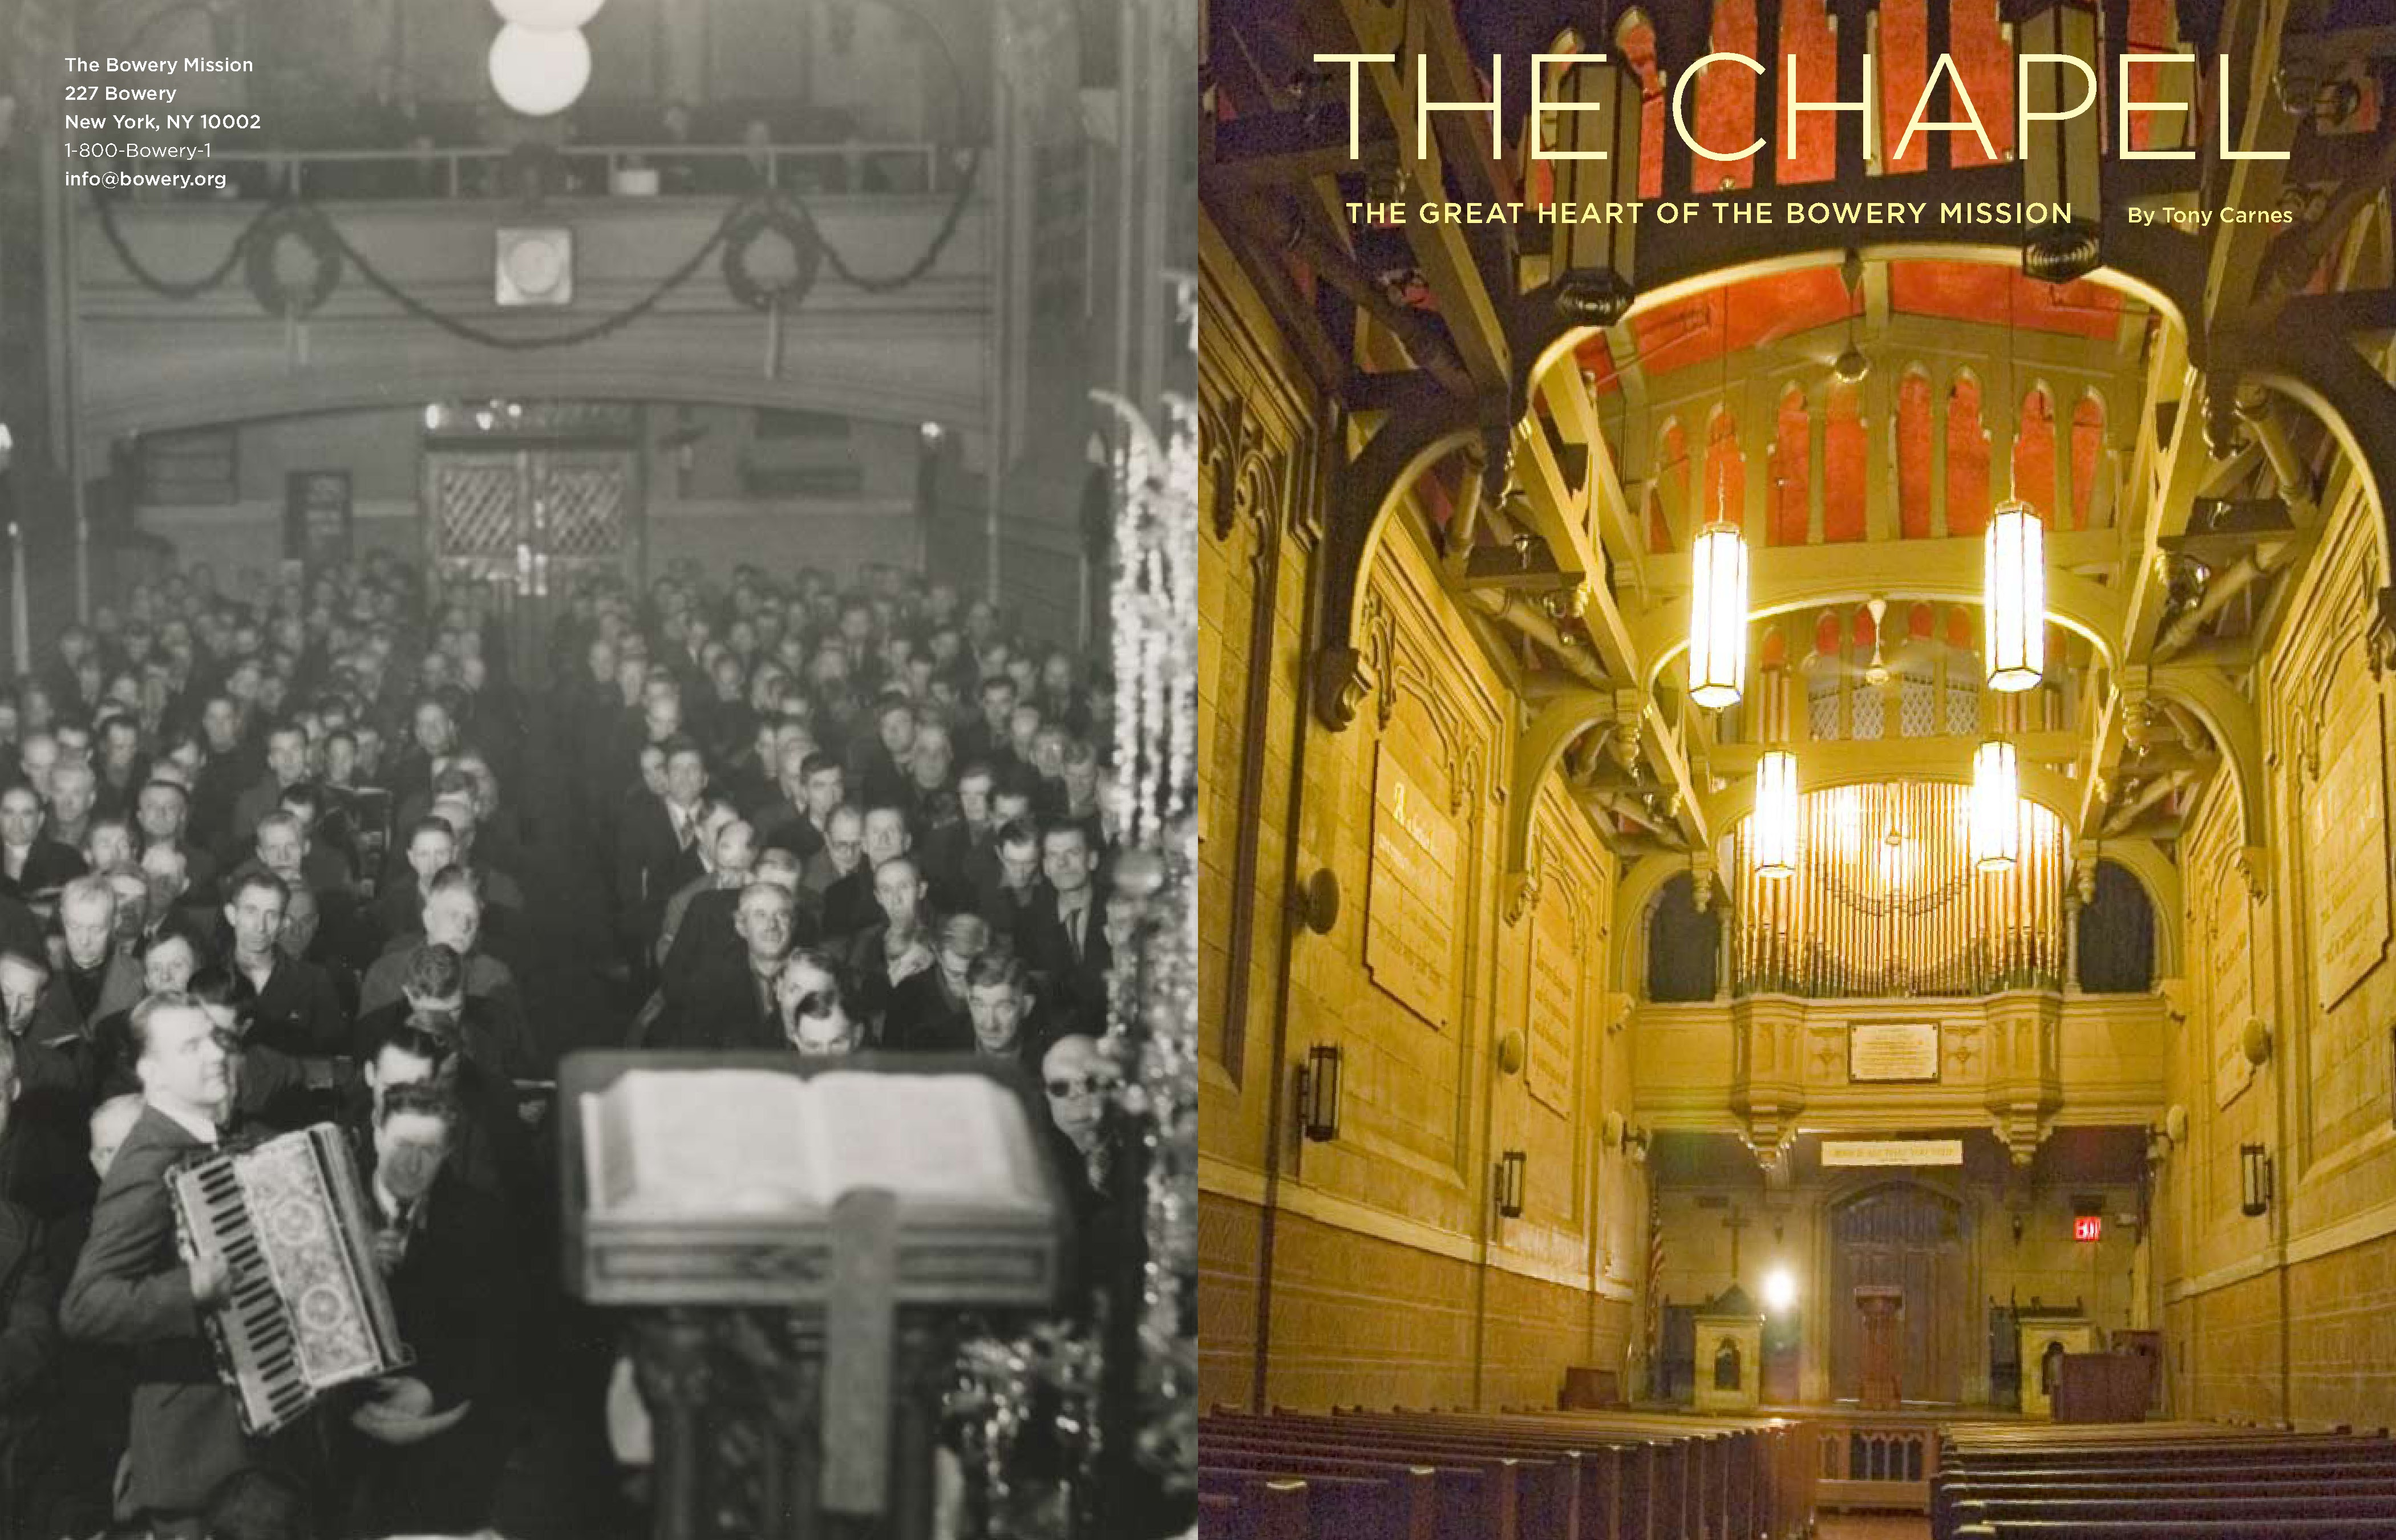 100 Years at The Bowery Mission Chapel